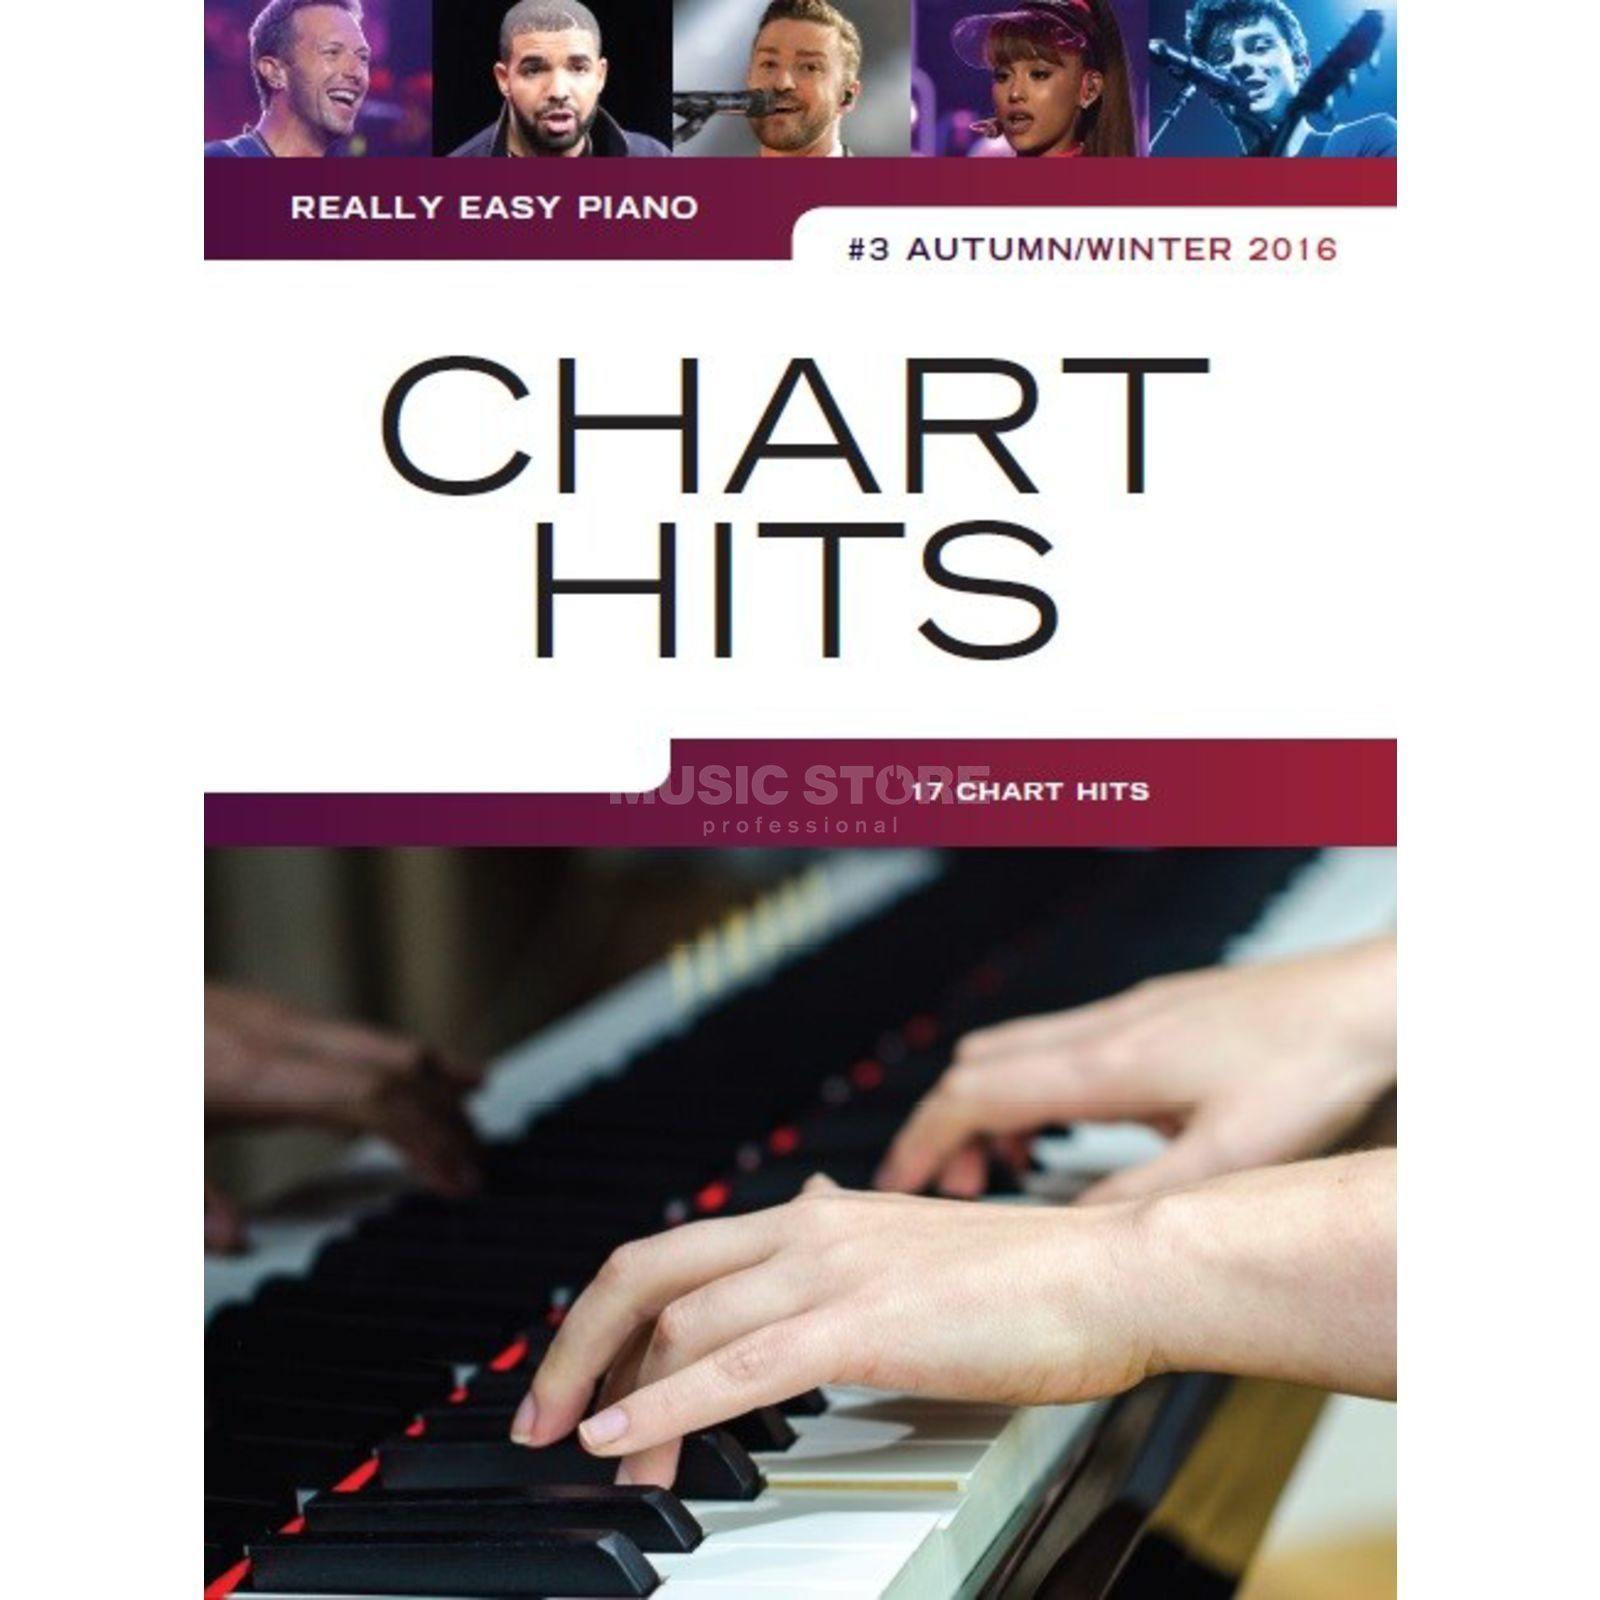 Wise Publications Really Easy Piano: Chart Hits Vol.3 (Autumn/Winter 2016) Produktbild